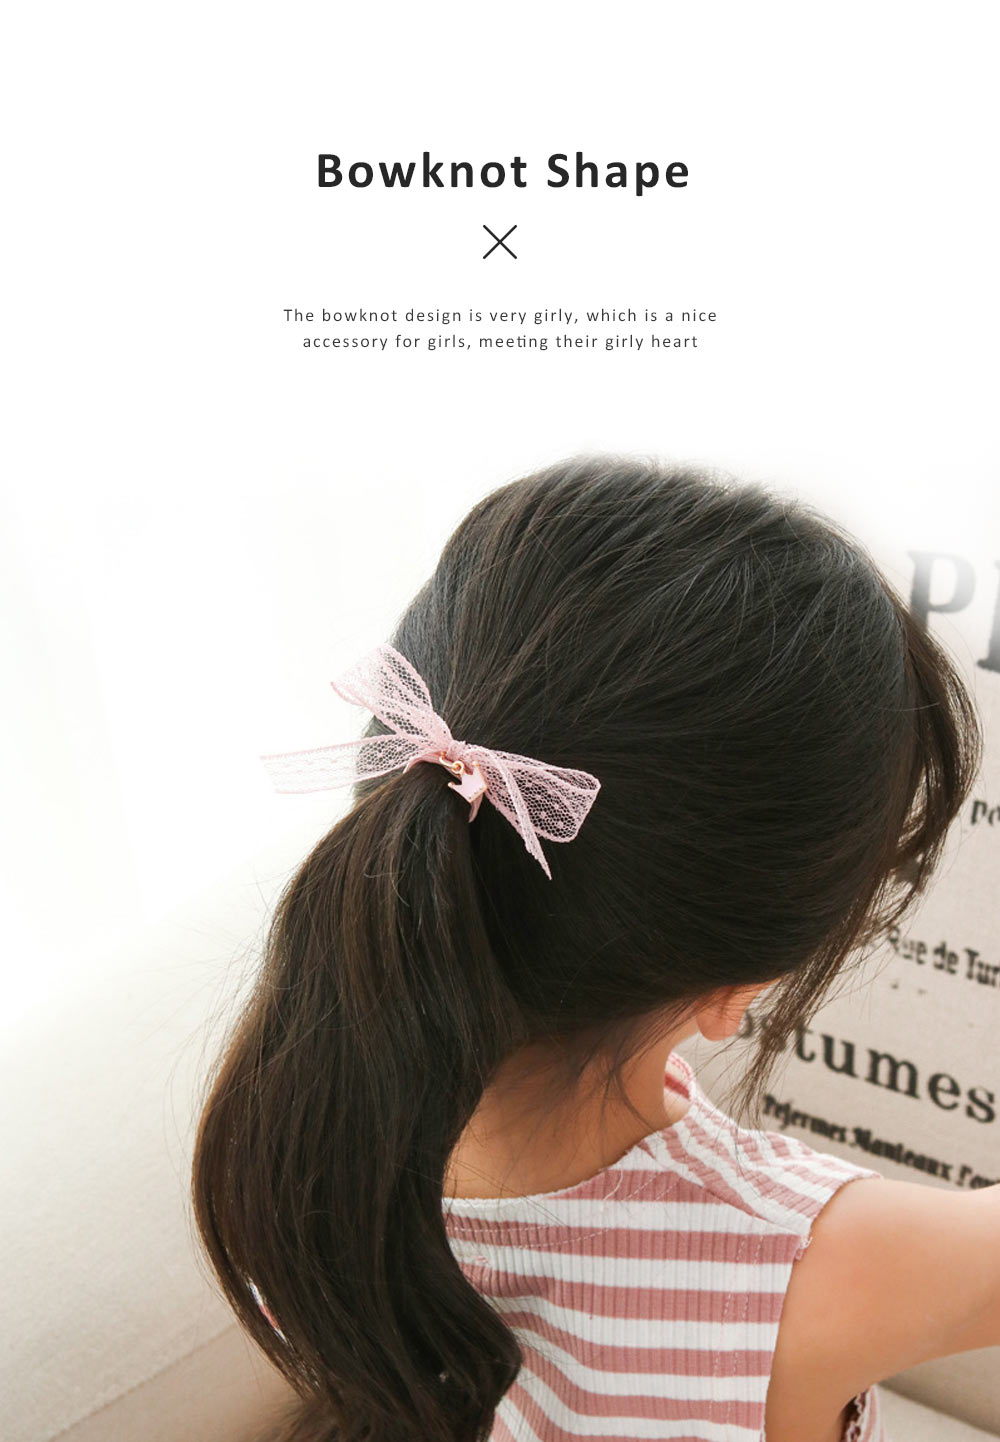 8 Pieces Hair Band Set Adorable Bowknot Elastic Hair Ties Cute Girly Hair Accessories for Teens Girls 3